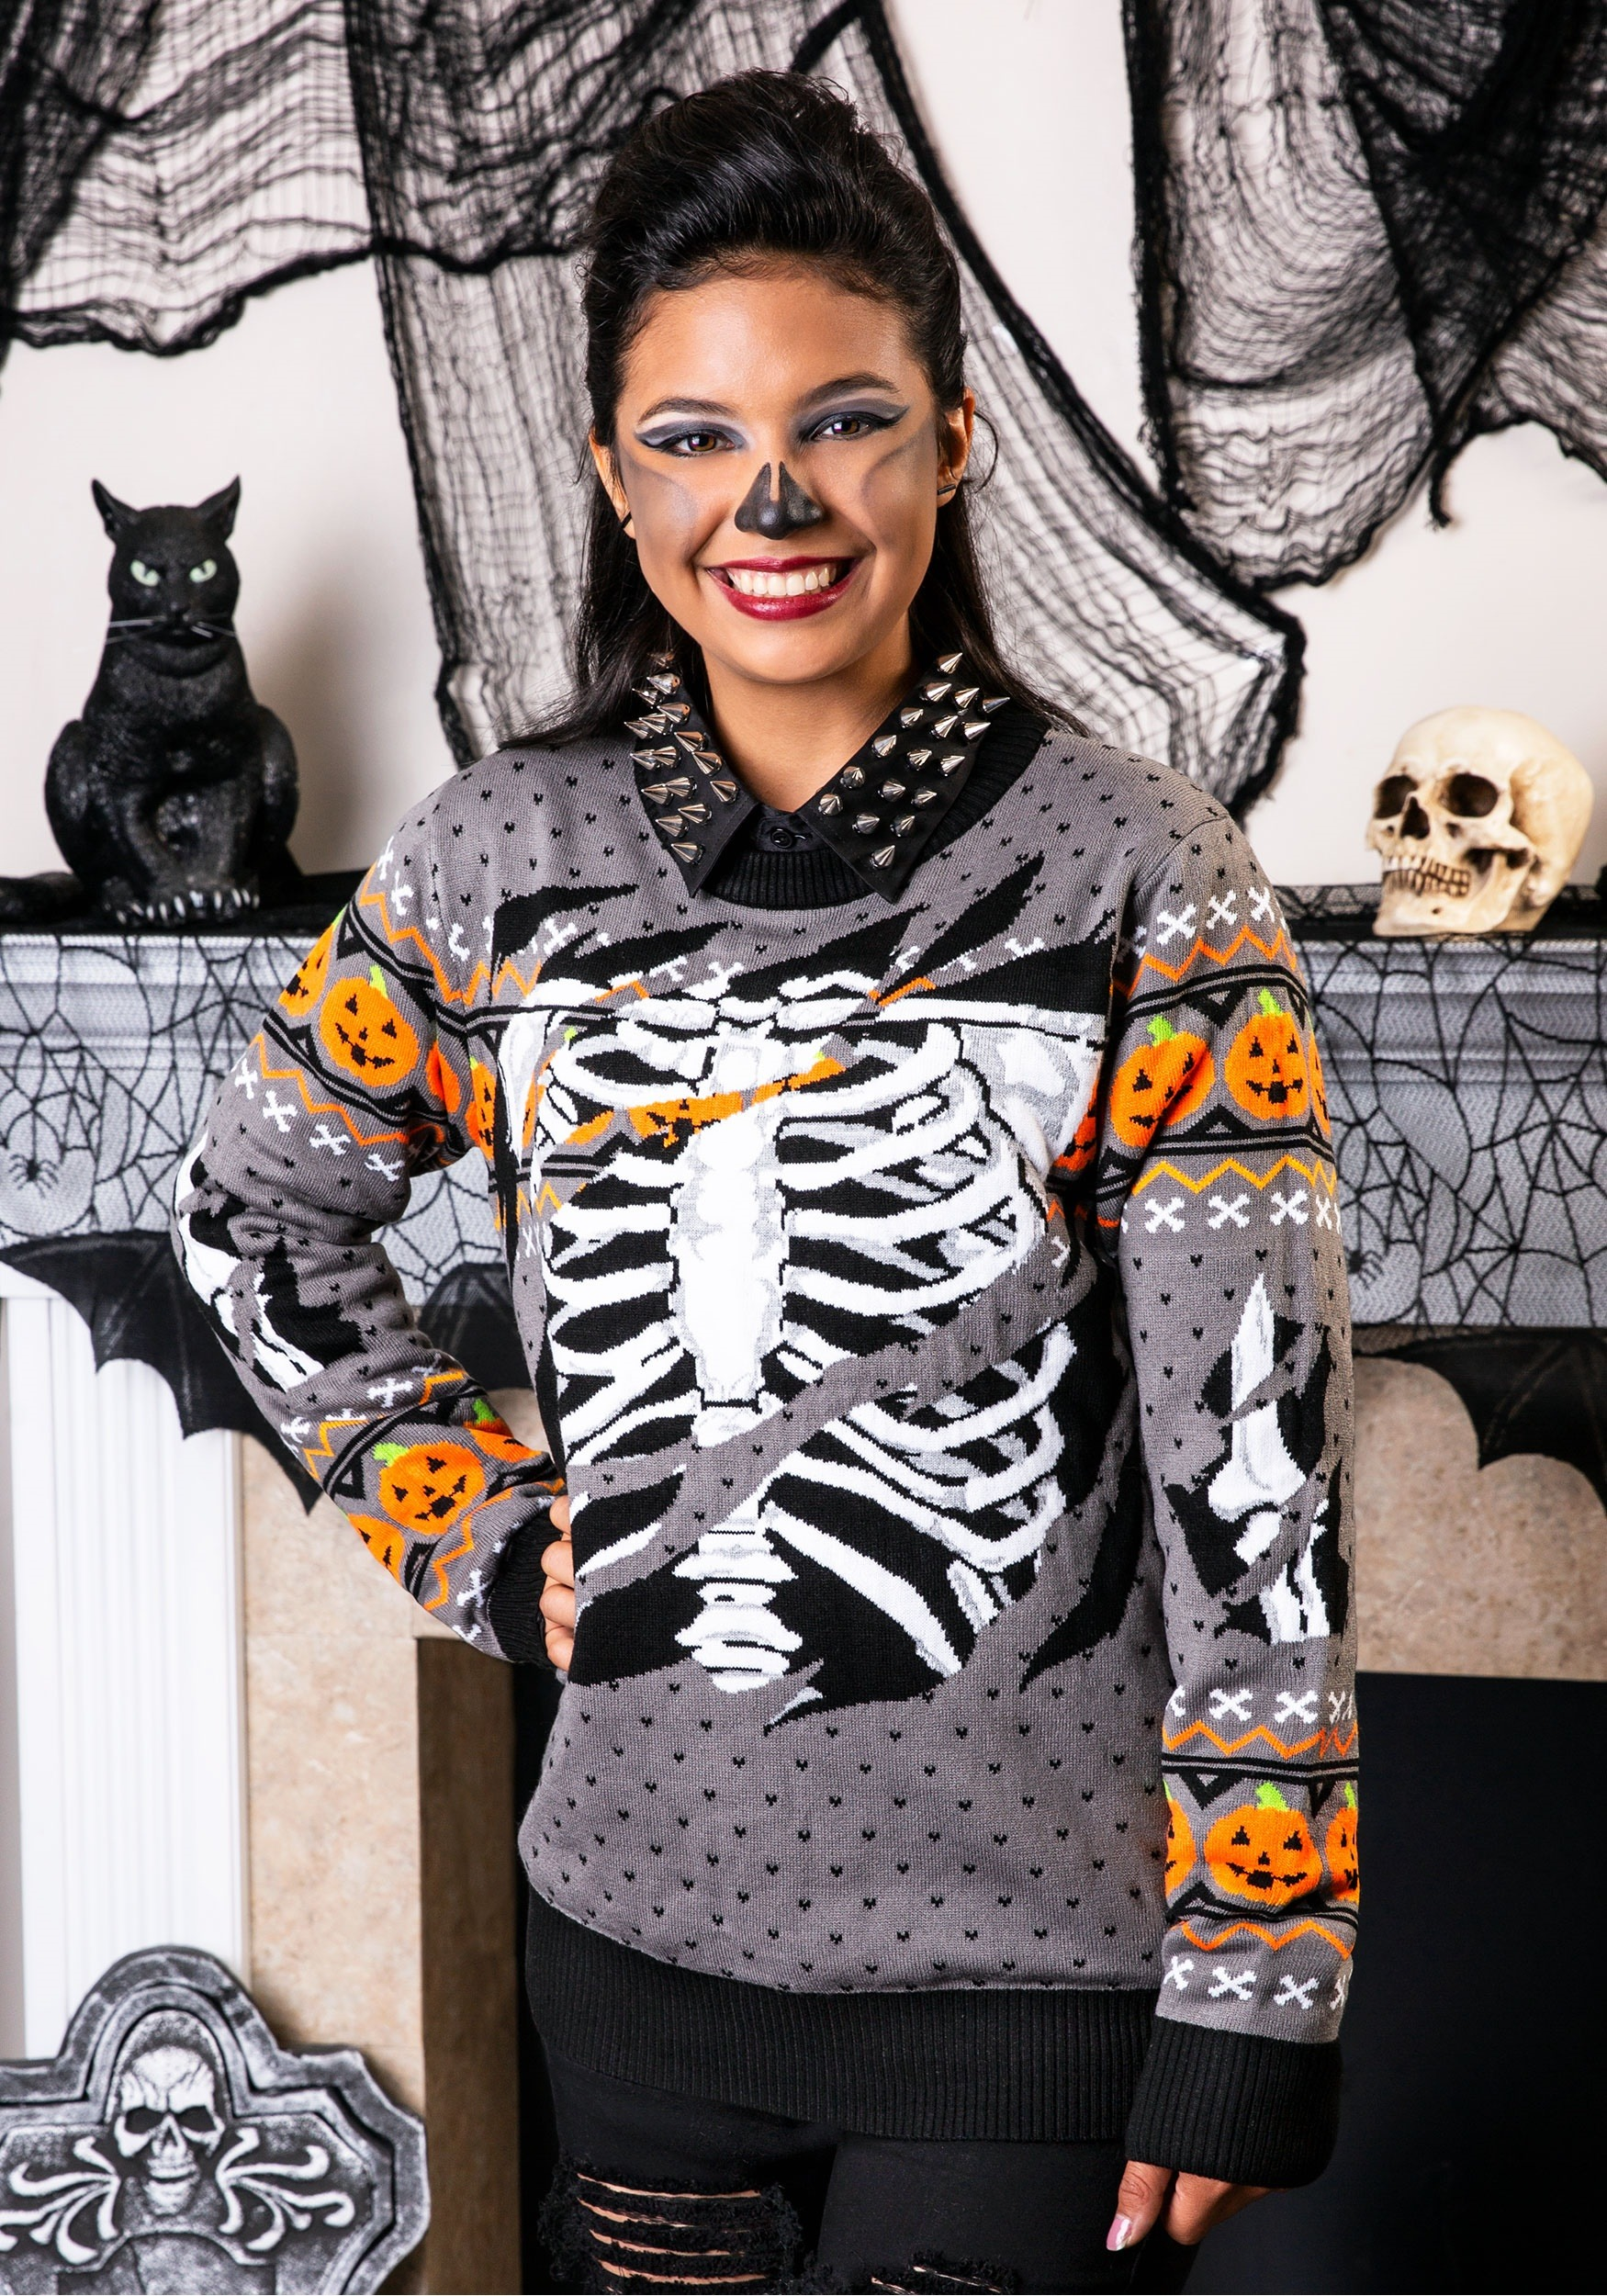 Ugly Halloween Sweaters Were Made for People Who are Too Lazy to Dress Up